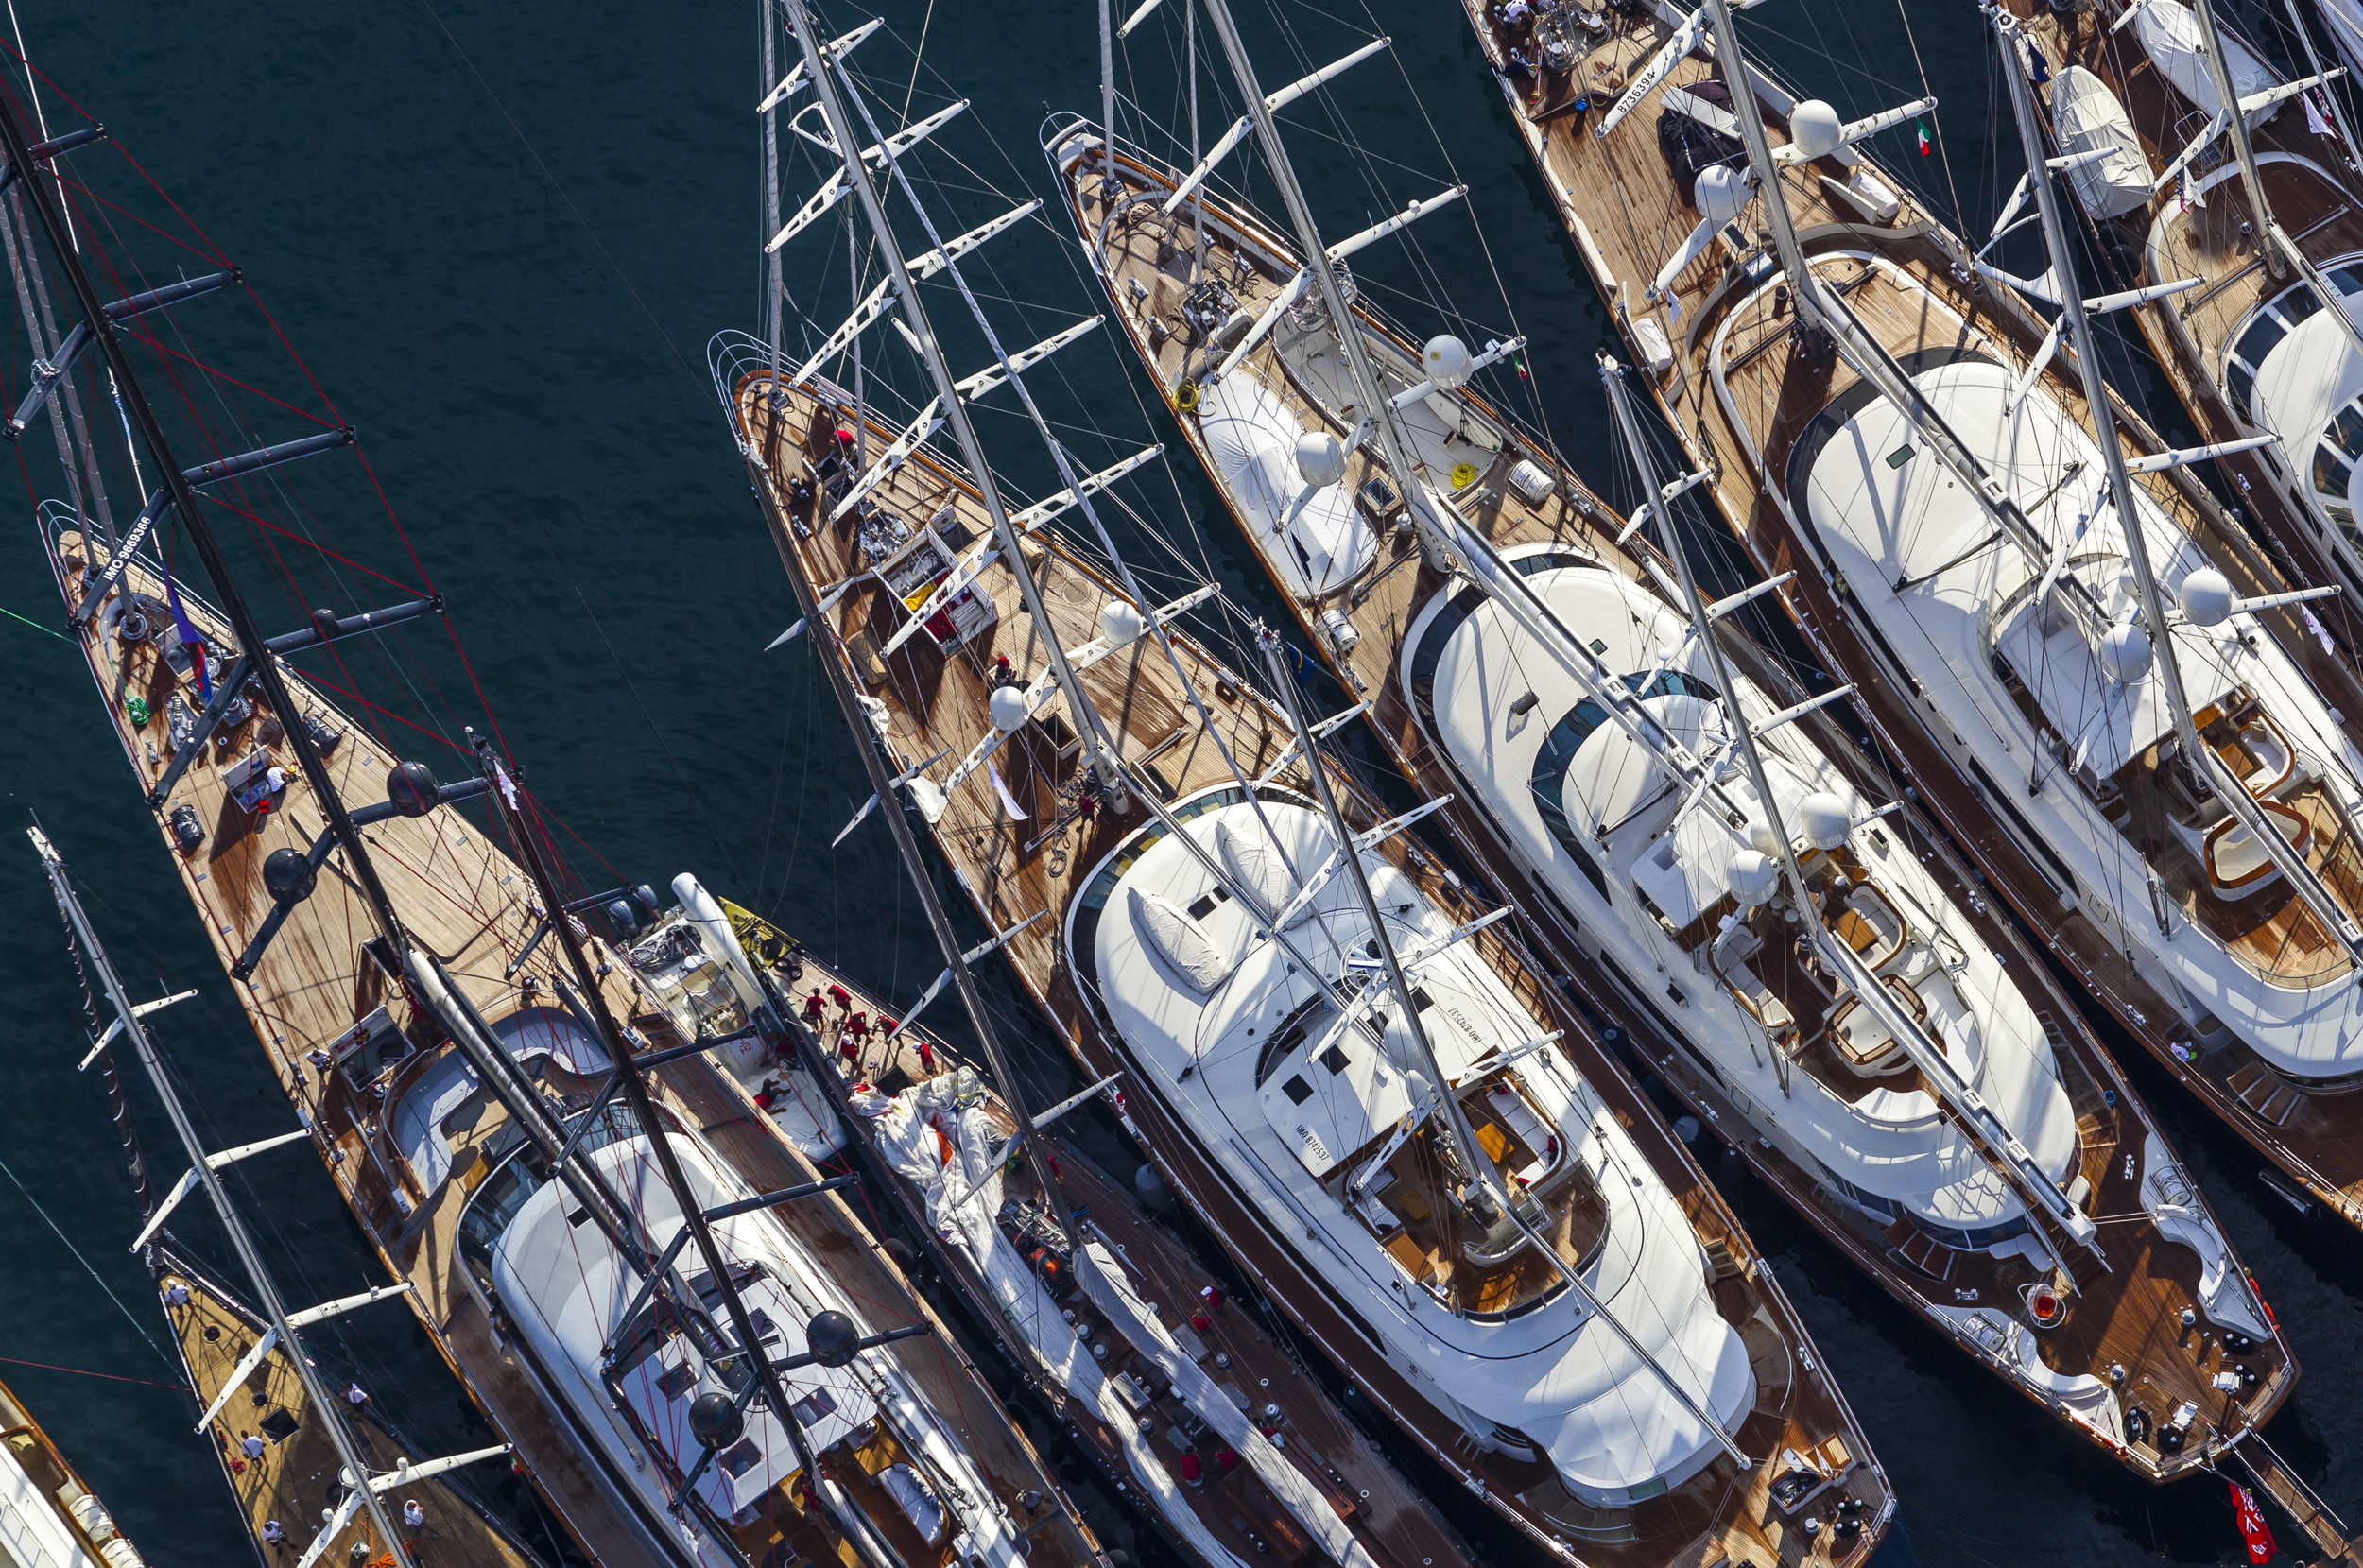 Luxury Sailing Superyachts At Regatta Events